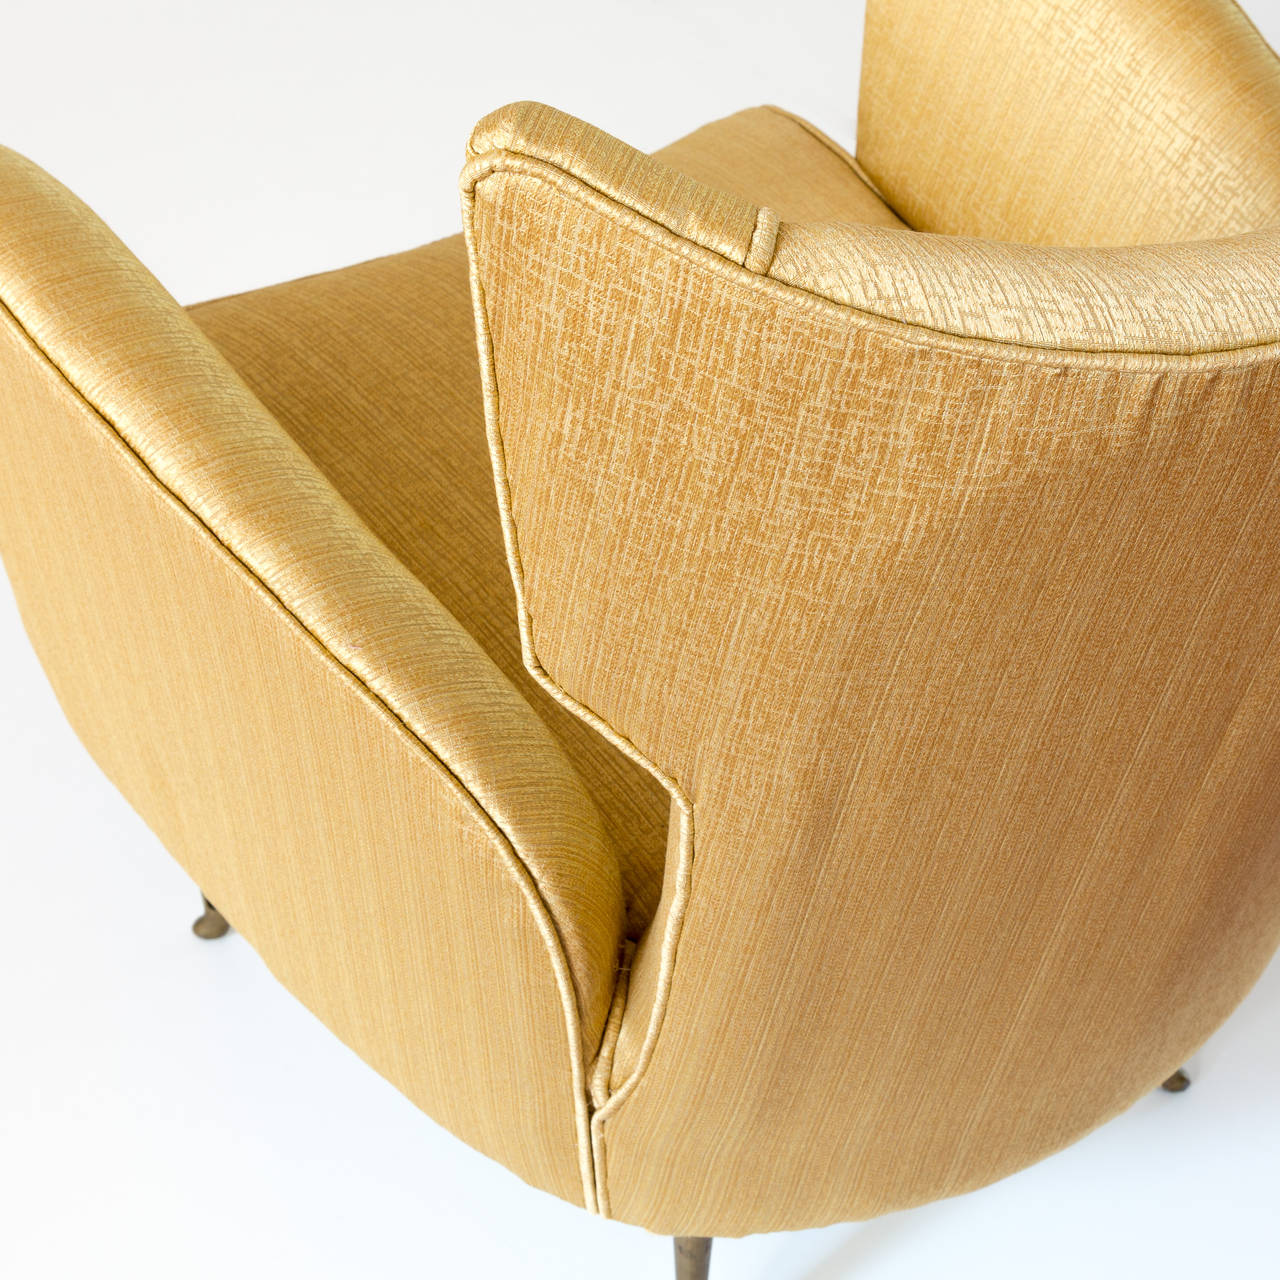 Mid-20th Century Elegant Italian Modern Yellow Armchair by Isa Bergamo, 1950 For Sale